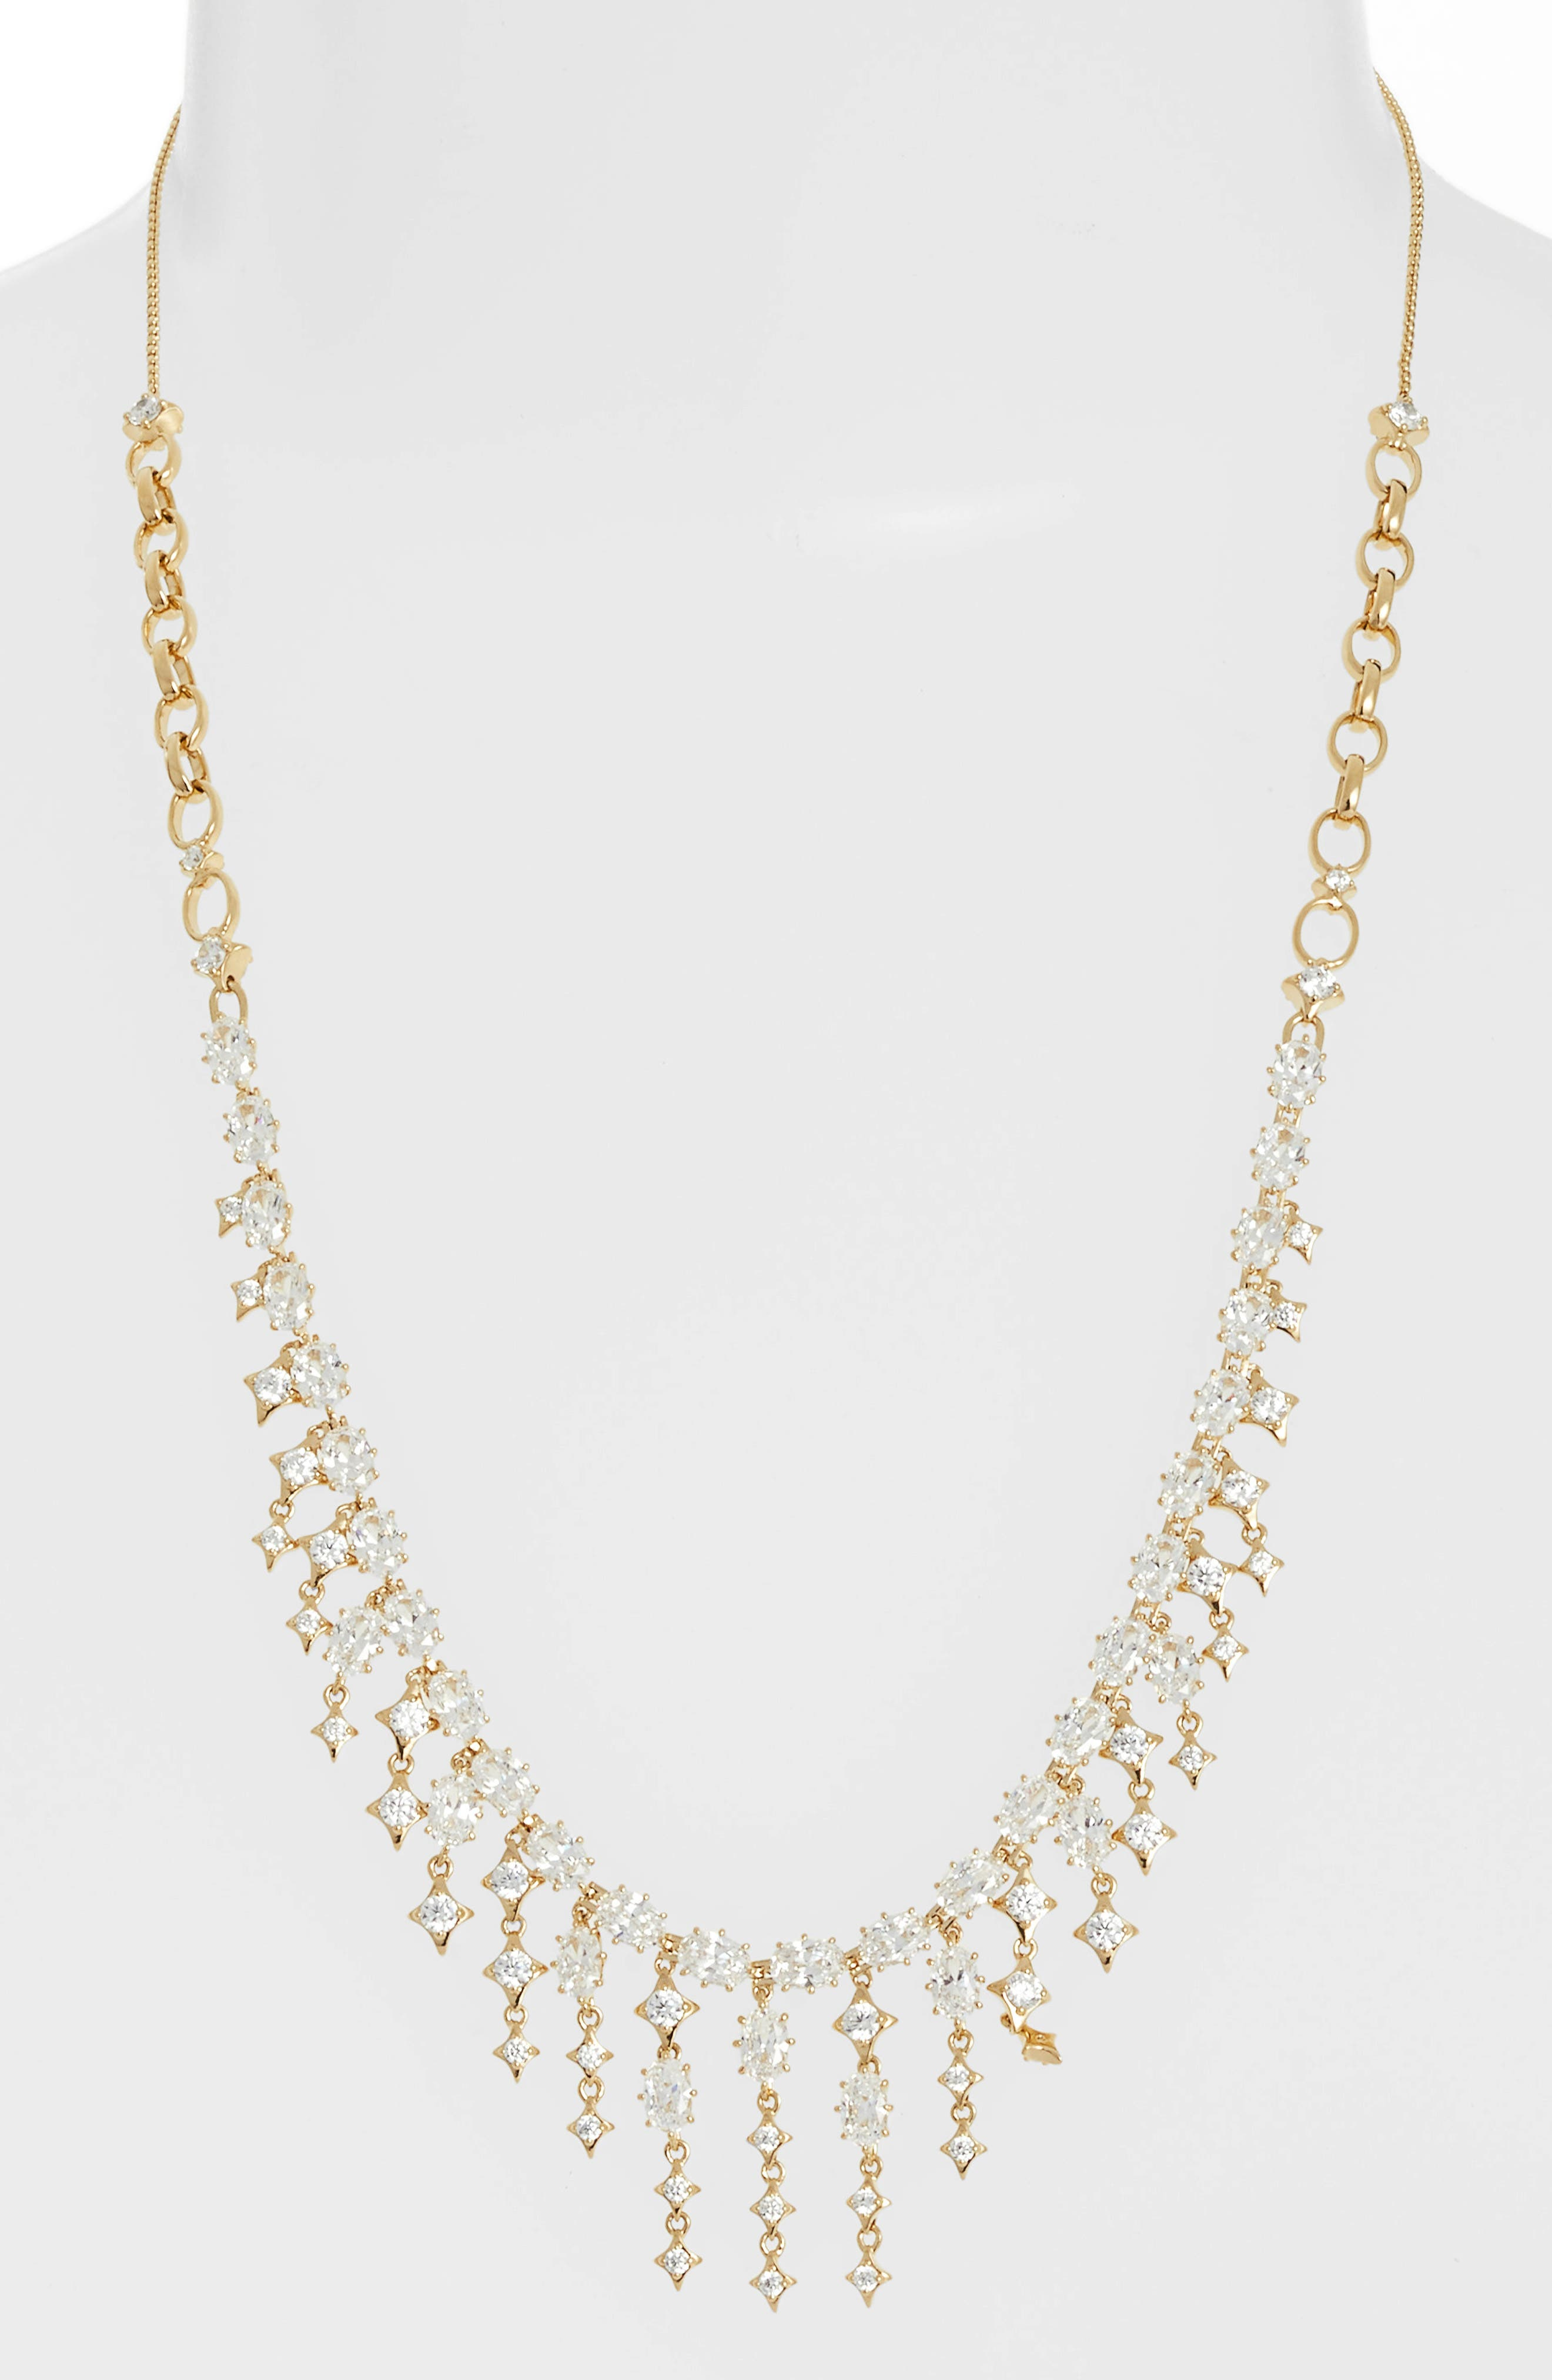 Crystal Fringe Necklace,                             Main thumbnail 1, color,                             GOLD/ CLEAR